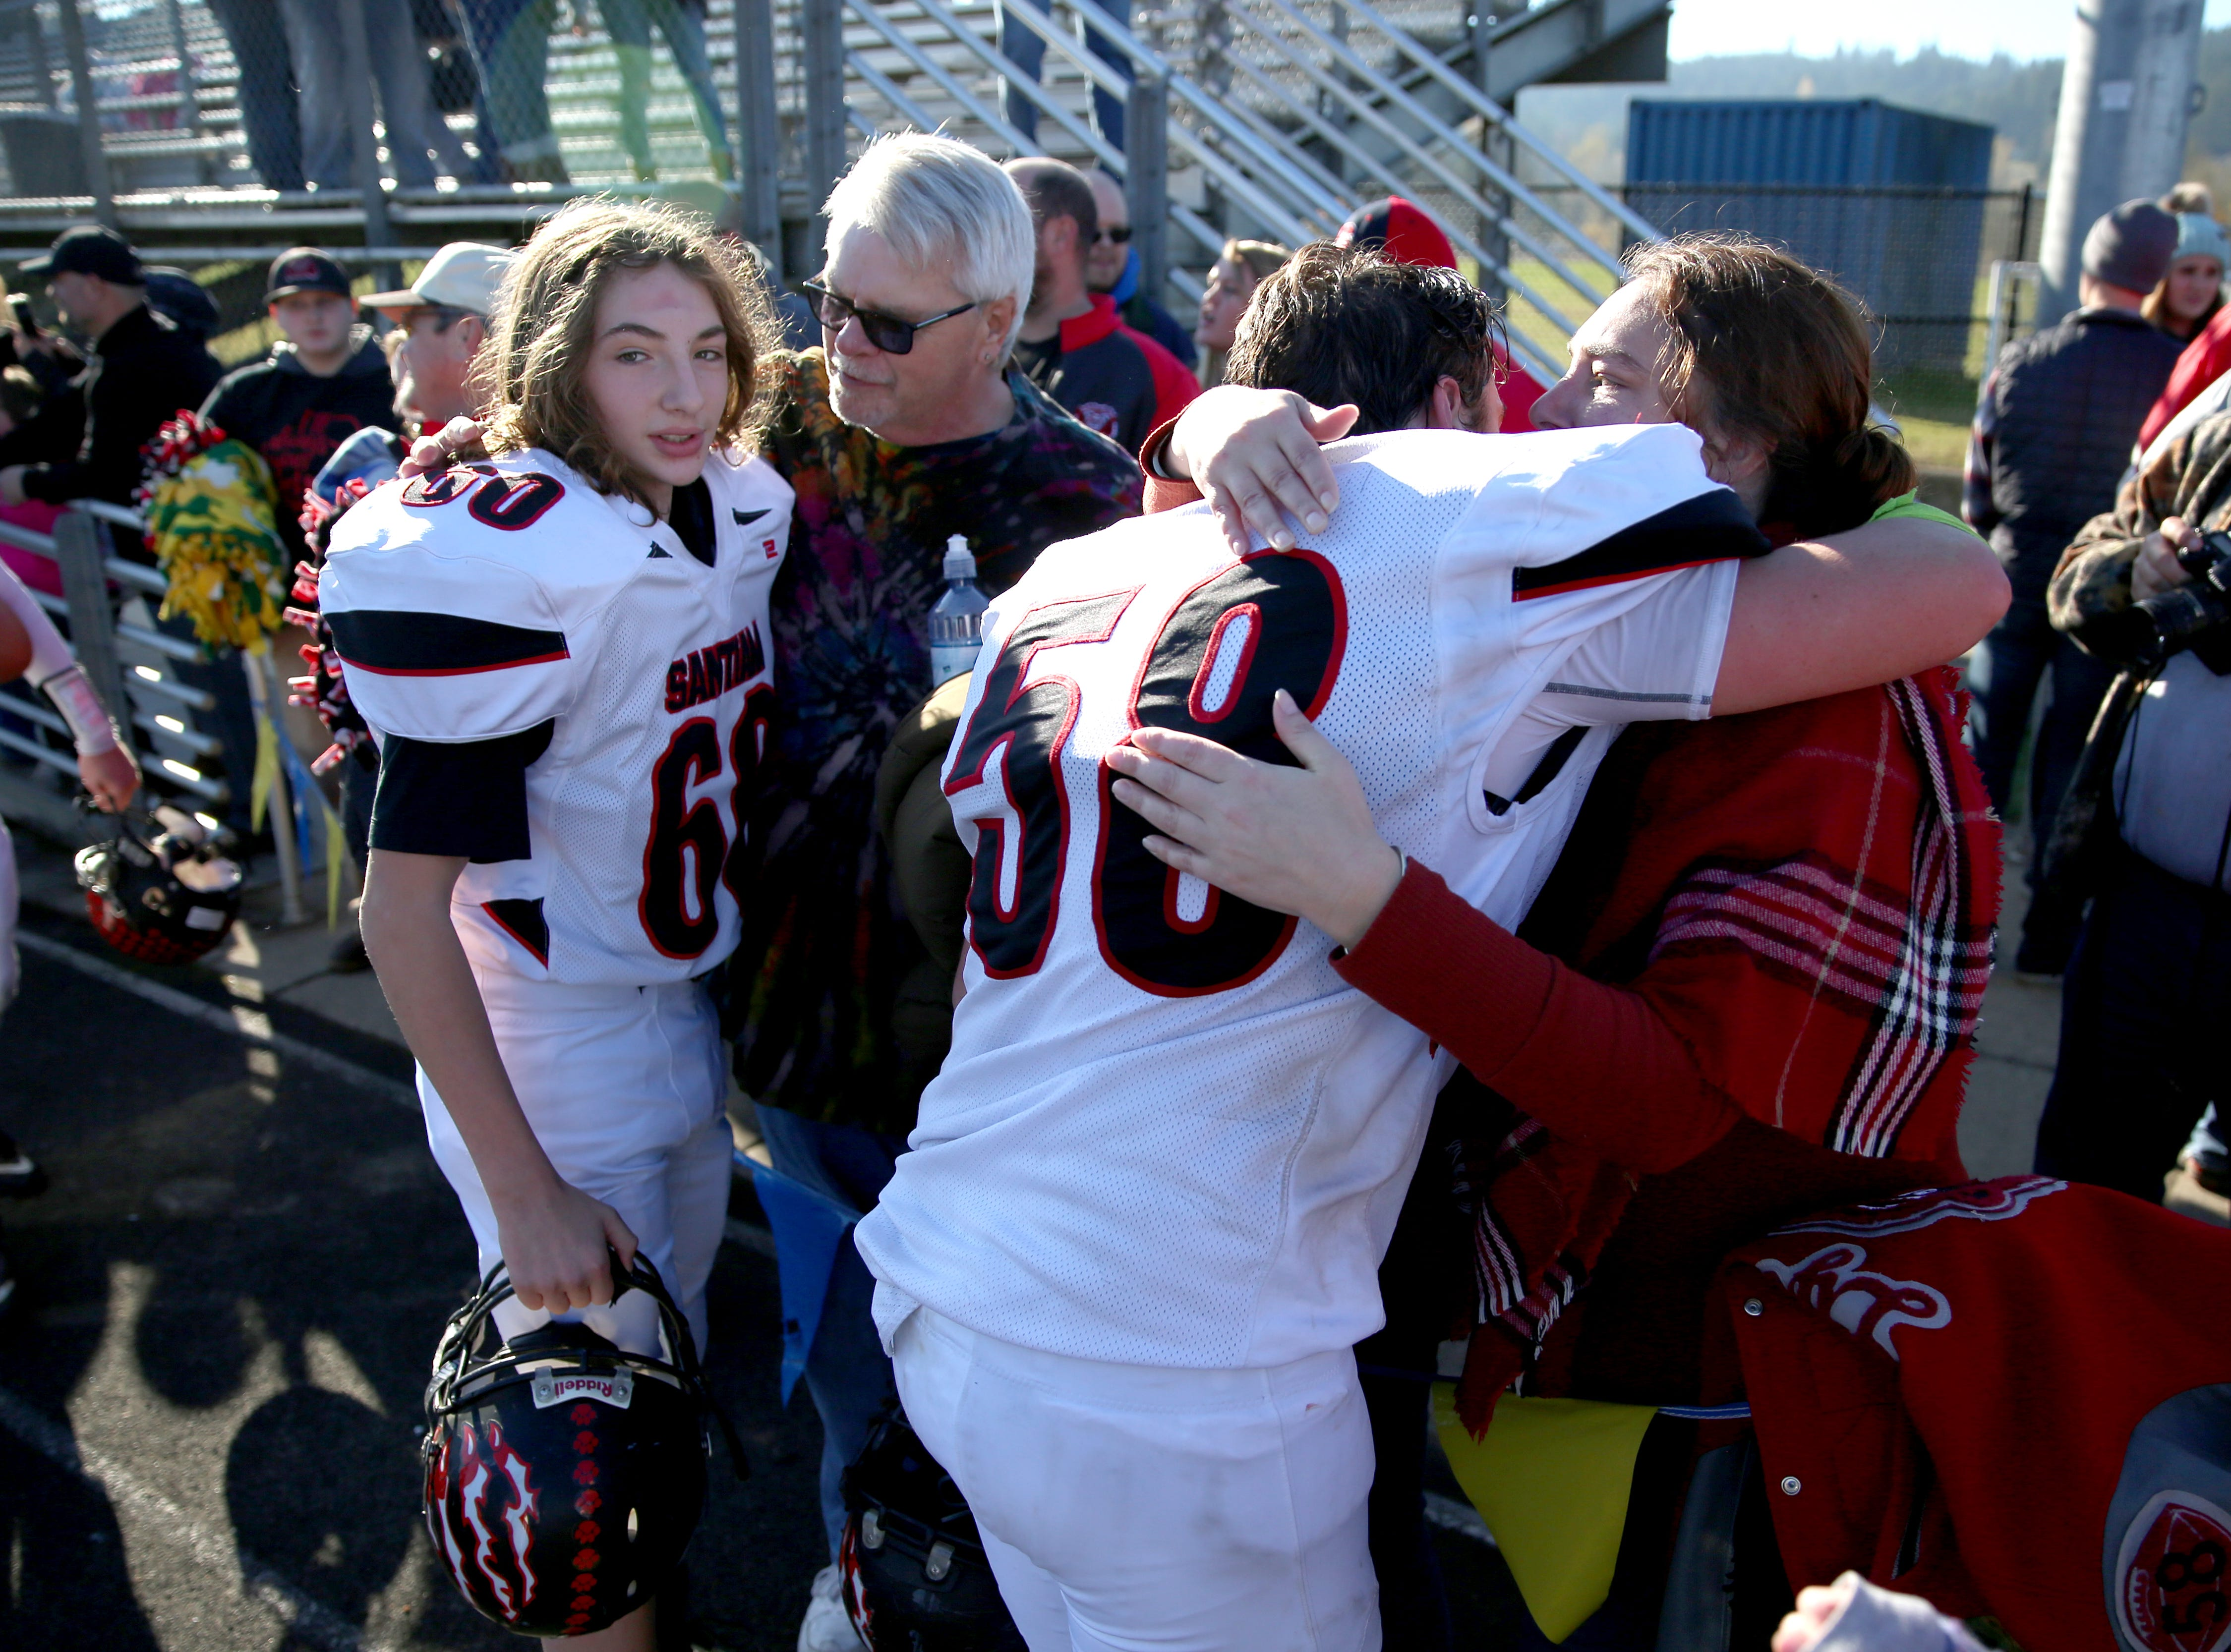 Santiam's Morgan Ruby (60) and Wyatt Lyon (58) greet their family after defeating Monroe, 44-13, in the OSAA 2A semifinal Santiam vs. Monroe football game on Saturday, Nov. 17, 2018 in Cottage Grove.